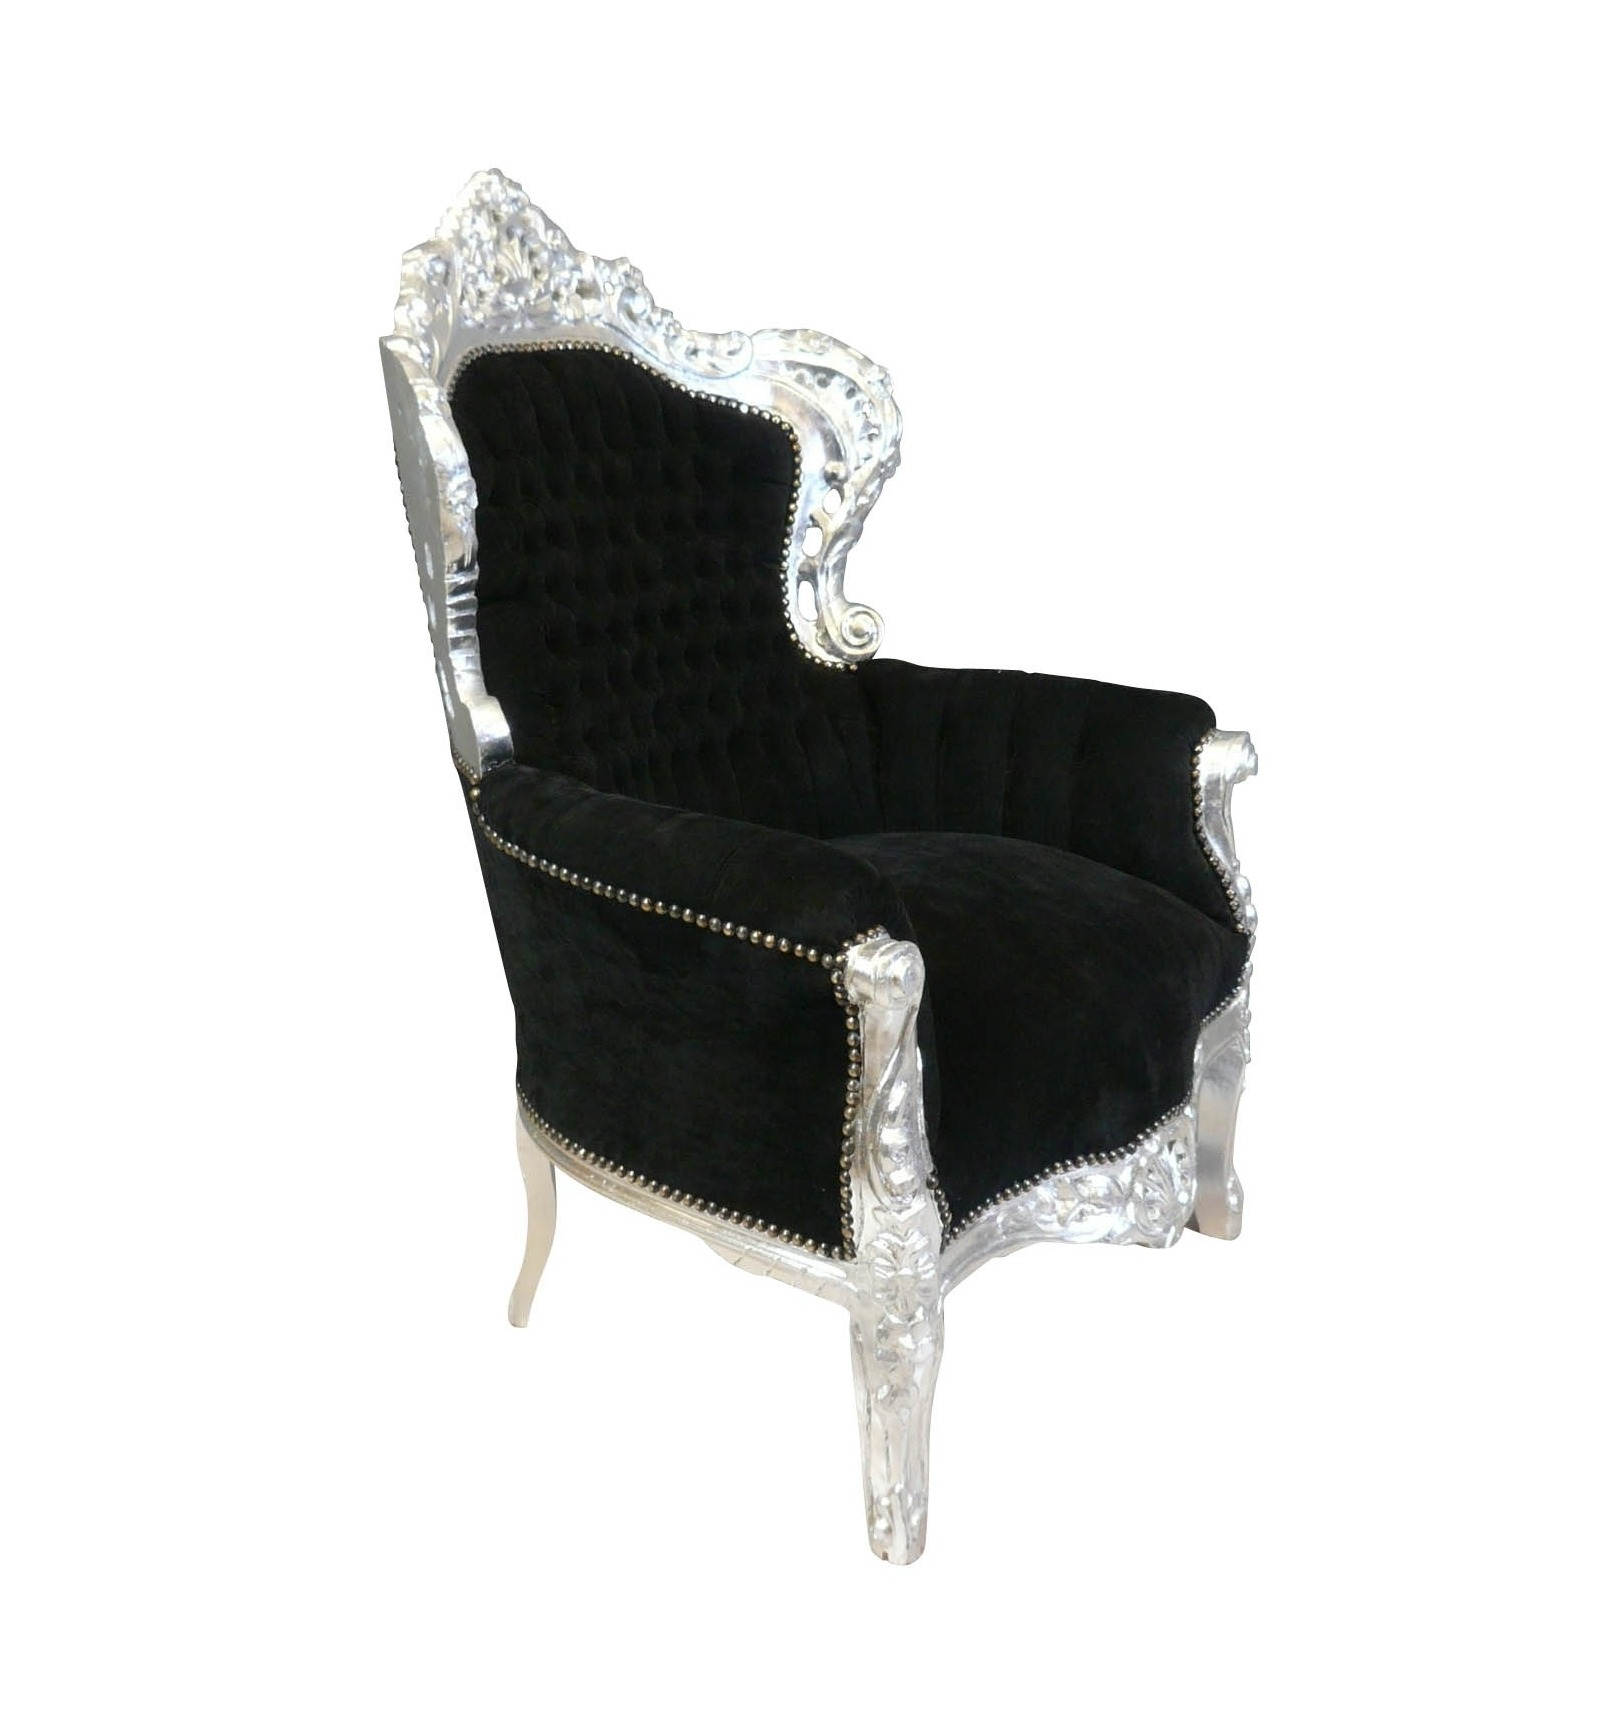 fauteuil baroque royal noir et argent chaise pouf et meuble design. Black Bedroom Furniture Sets. Home Design Ideas